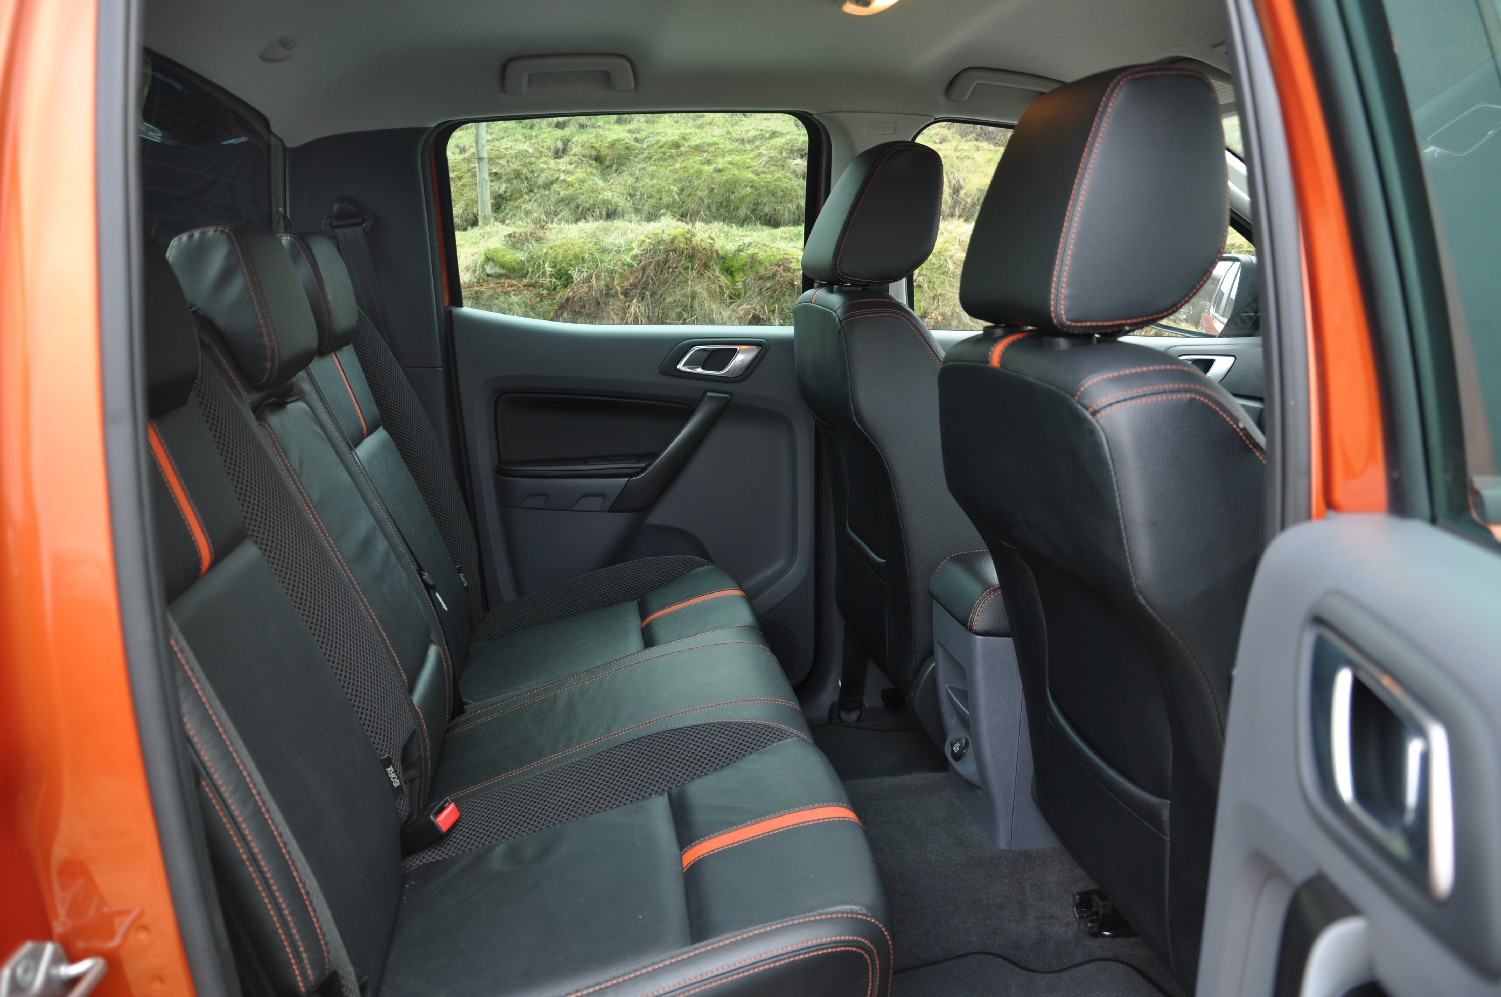 2012 Ford Ranger Wildtrak 3-2 diesel automatic road test review by Oliver Hammond photo - rear seats double cab